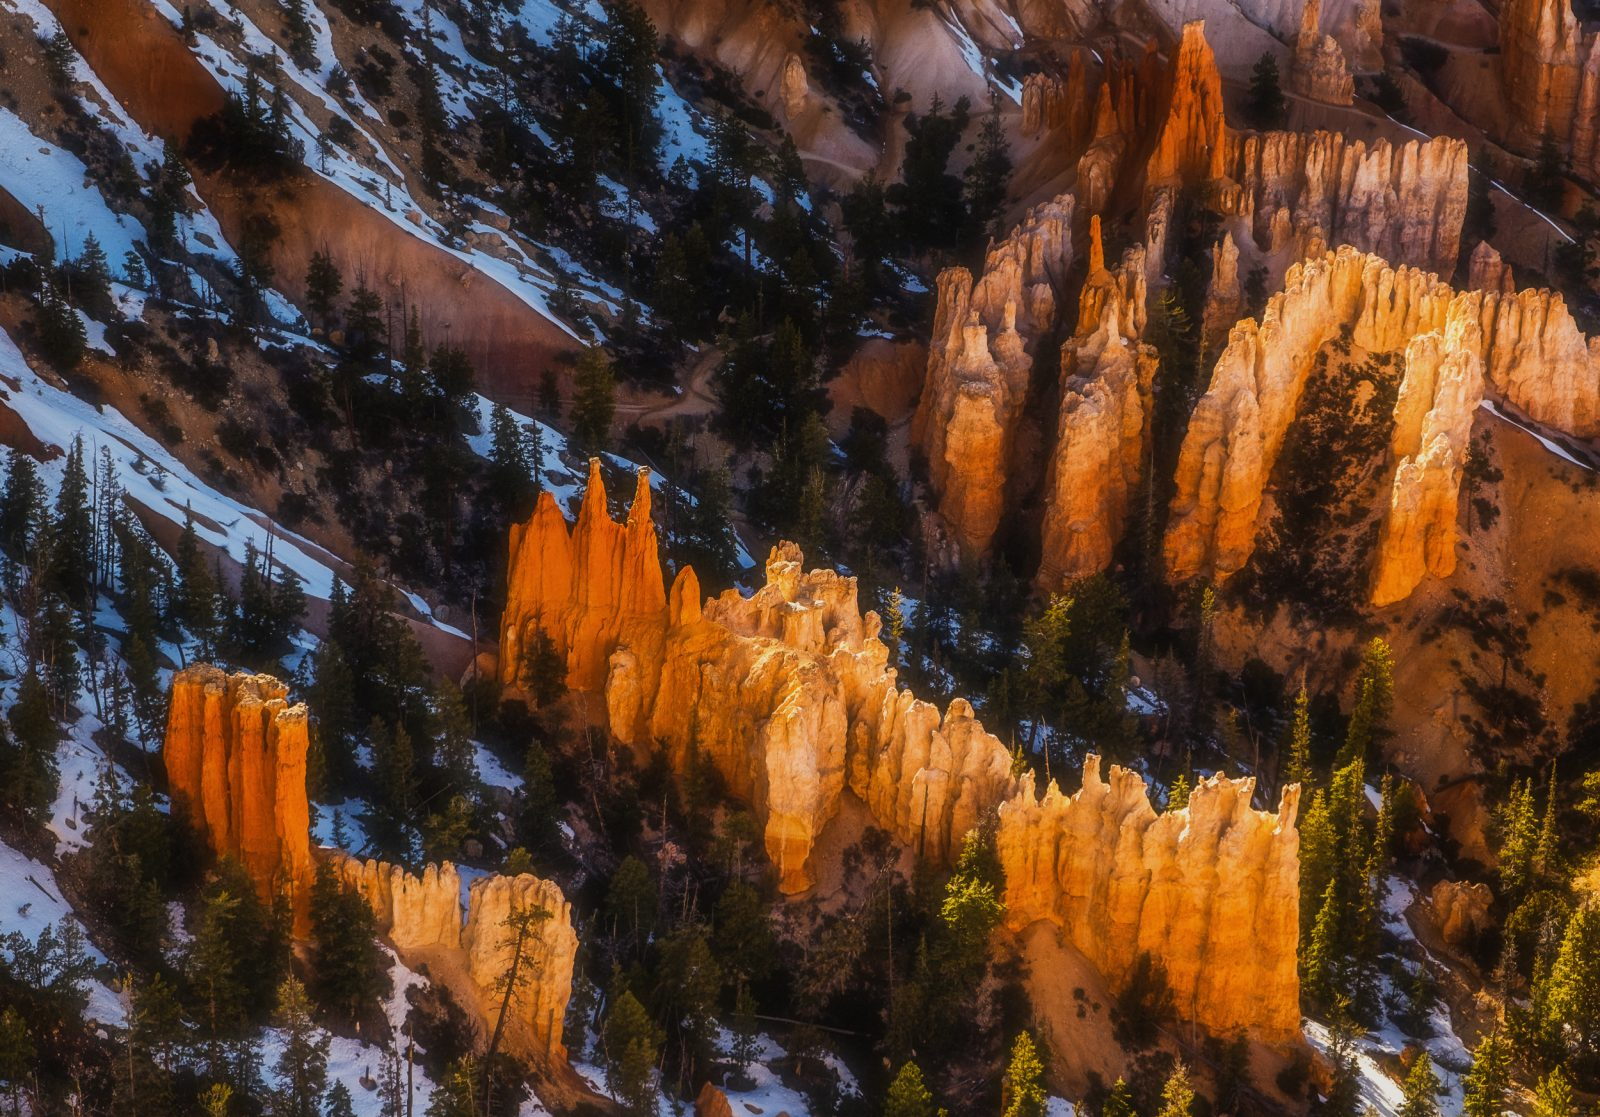 The Glowing Hoodoos